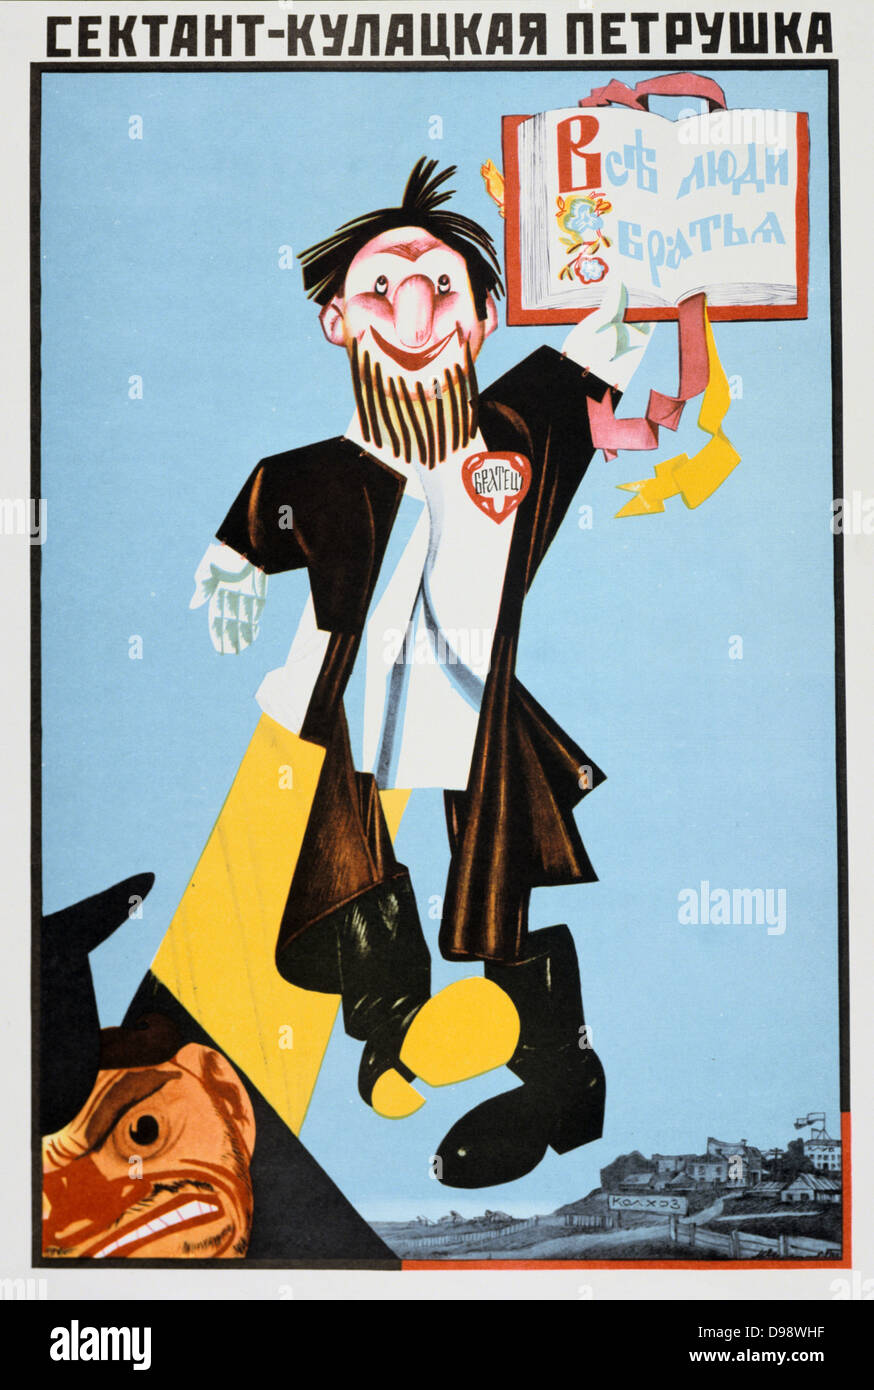 The Sectarian is the Kulaks' Puppet', 1925. Soviet propaganda poster by Mikhail Cheremnykh against Kulaks, - Stock Image